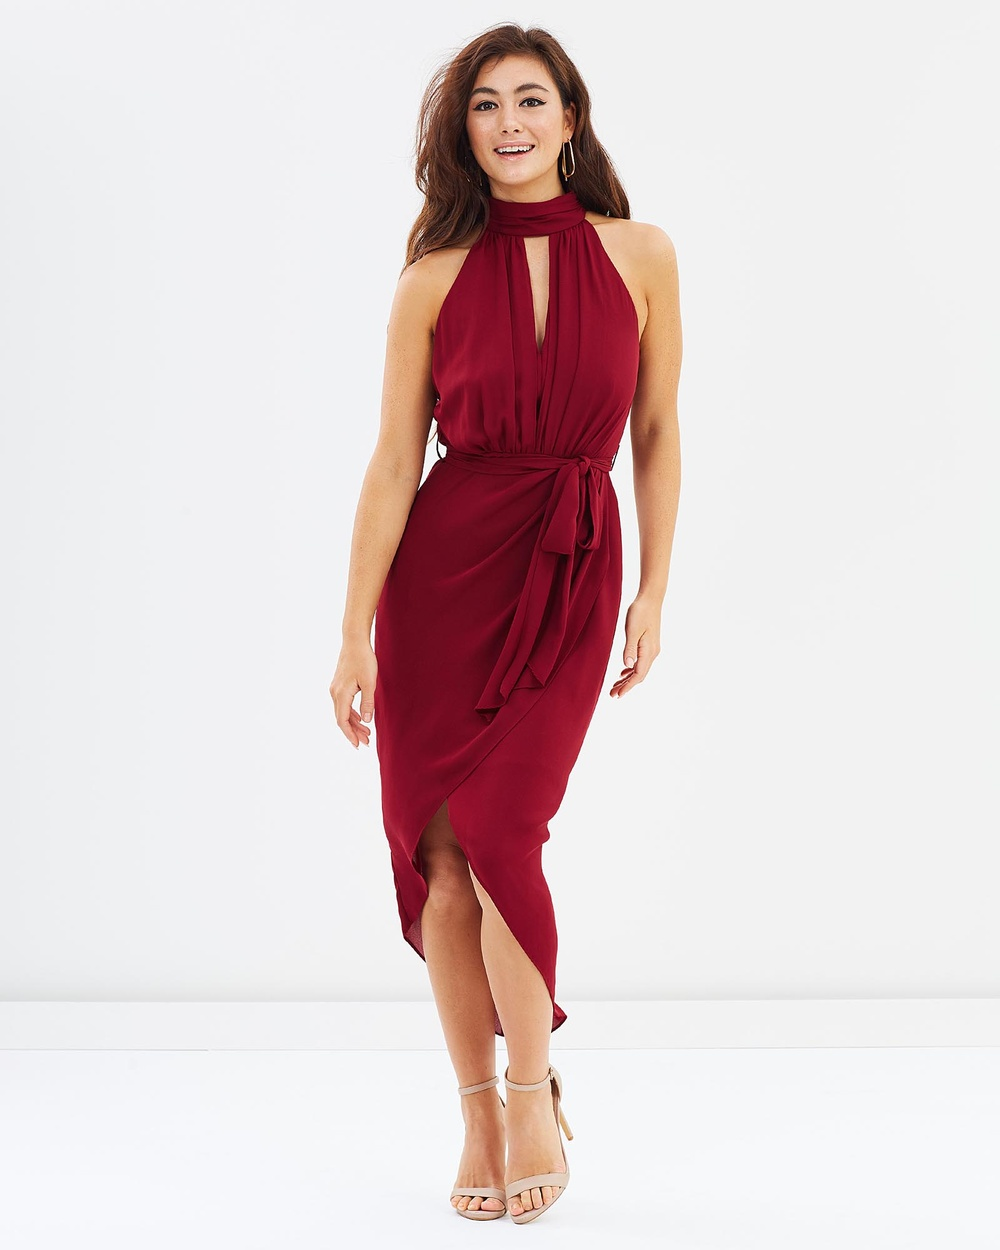 Montique Isla Halter Dress Bridesmaid Dresses Wine Isla Halter Dress